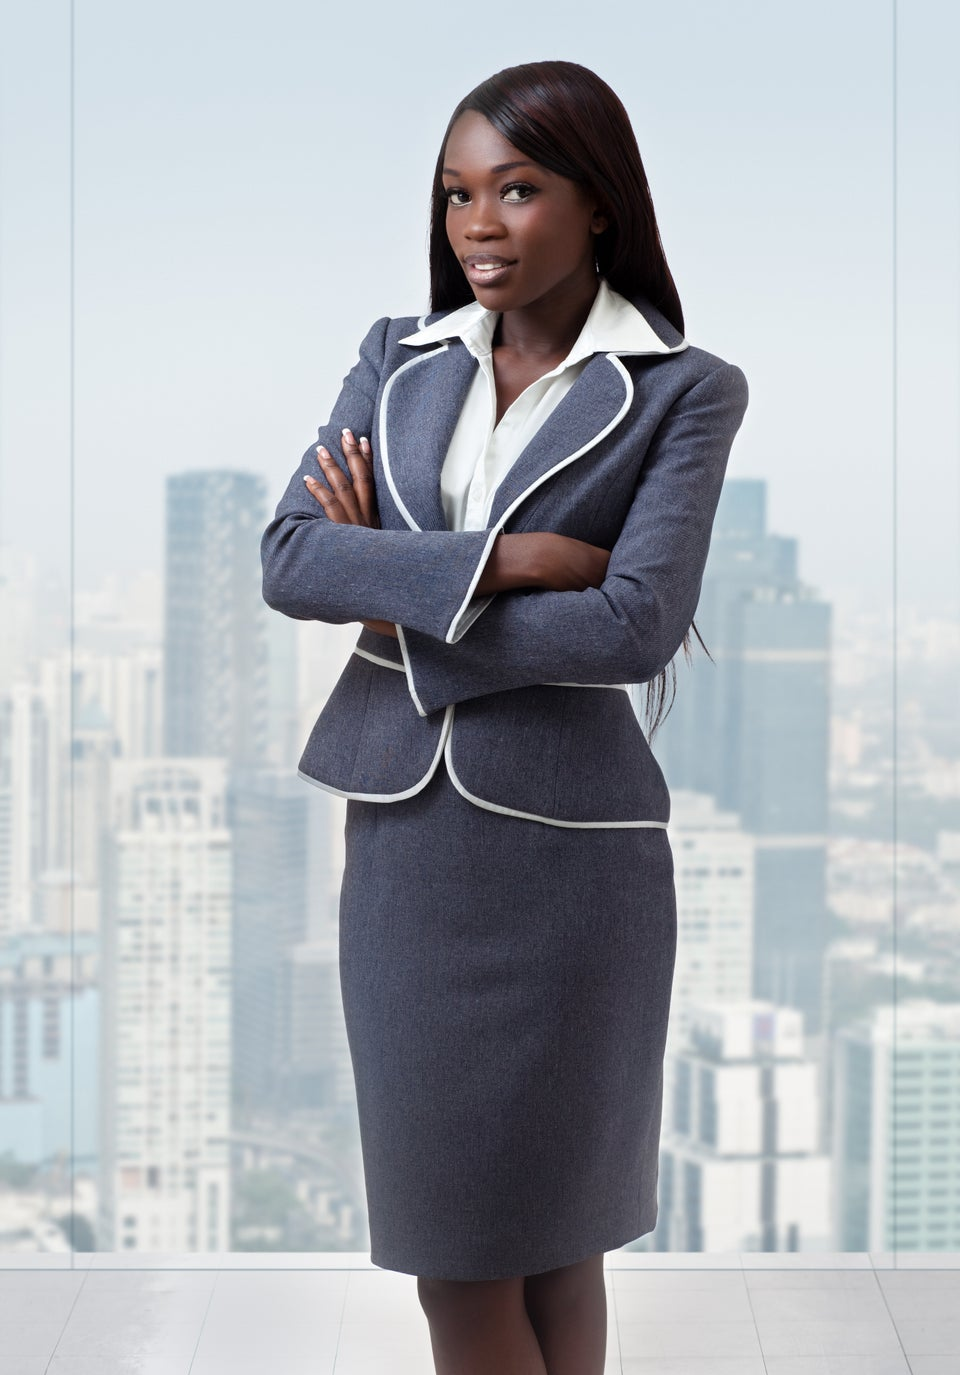 Tanisha's Tips: 5 Things You Must Know About Leadership